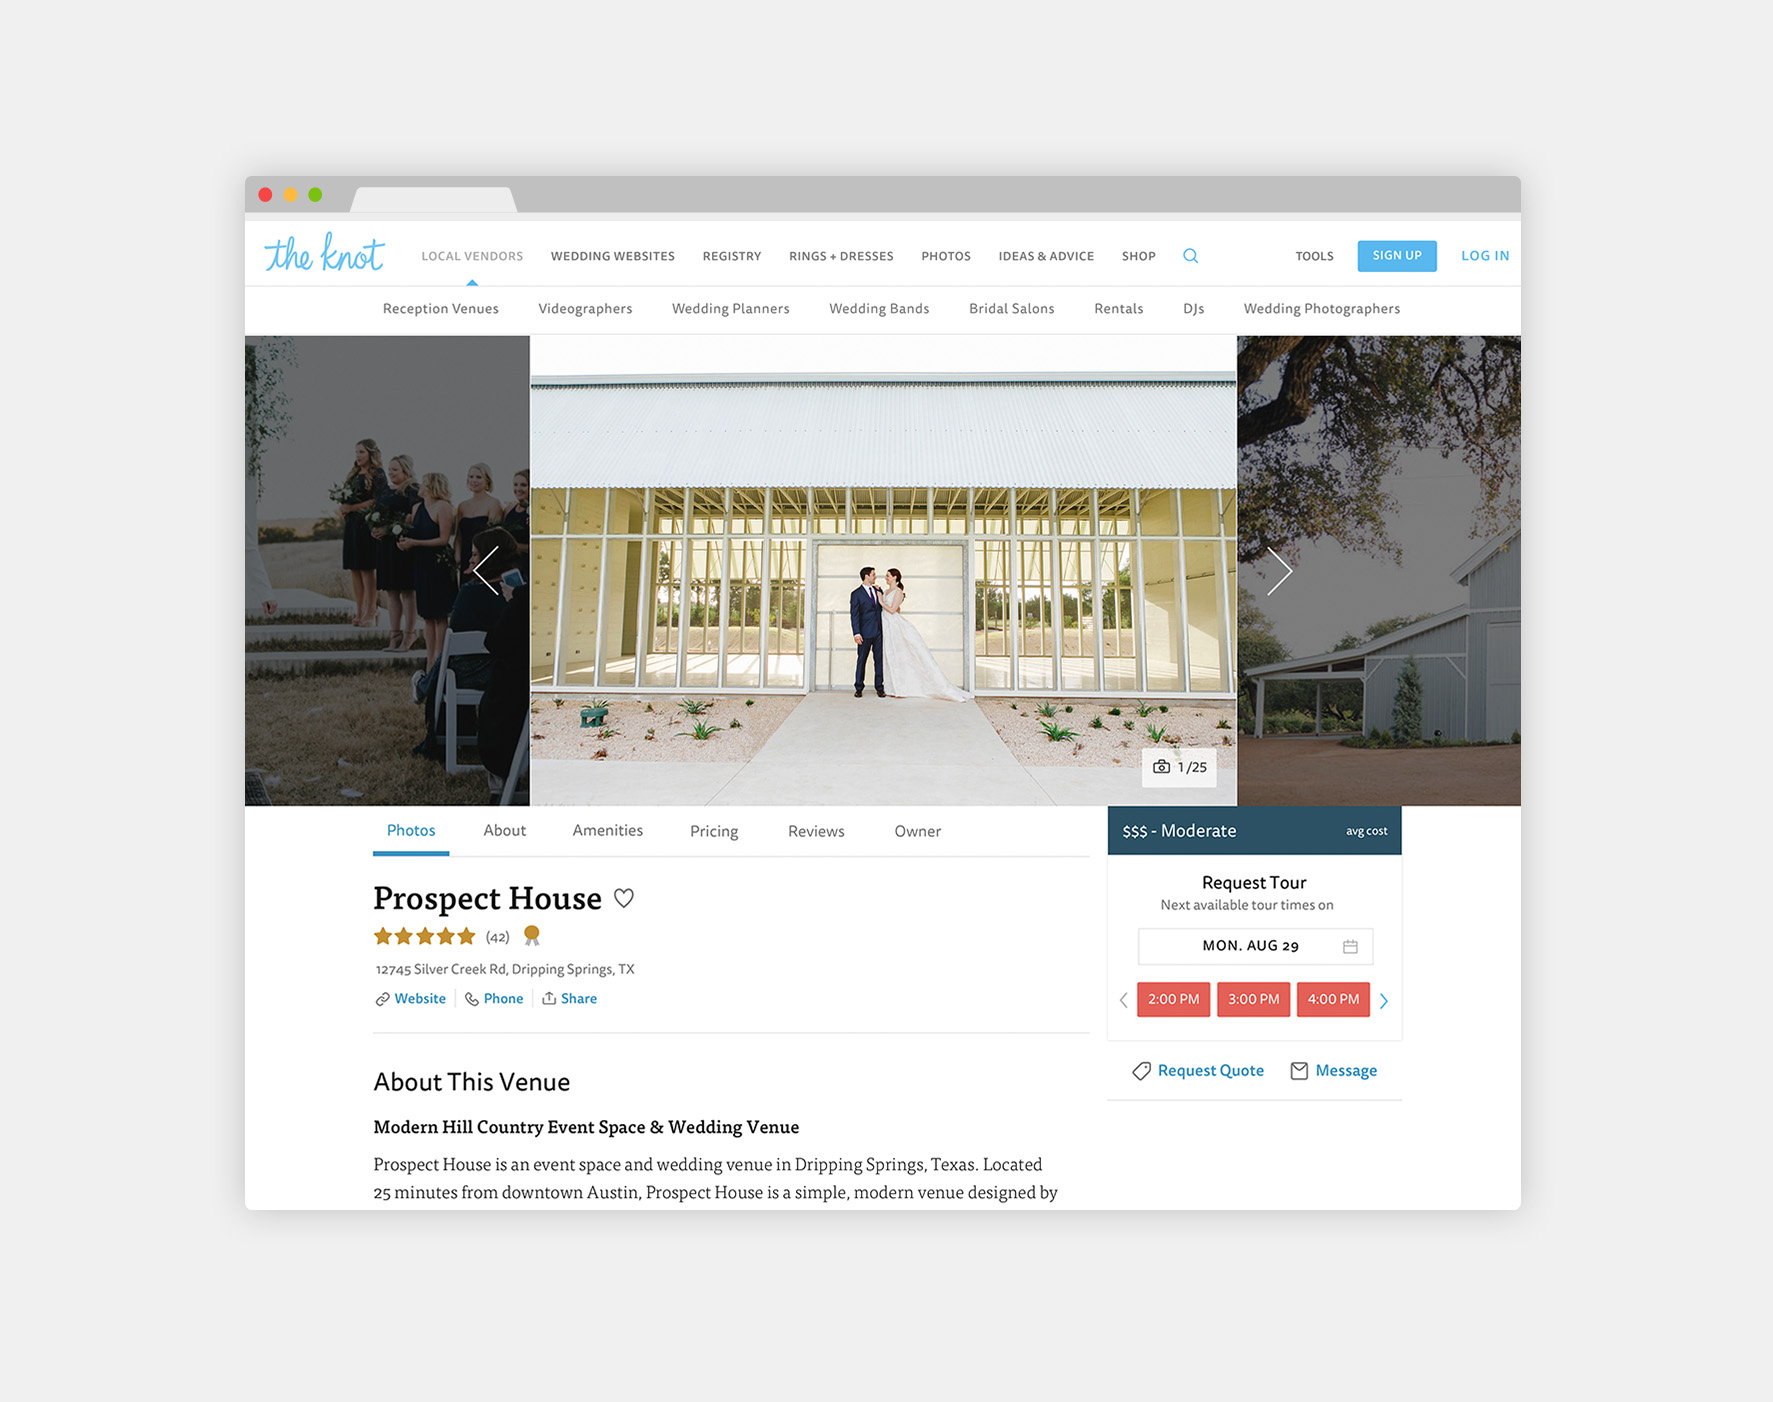 Link:  View Redesign in Invision